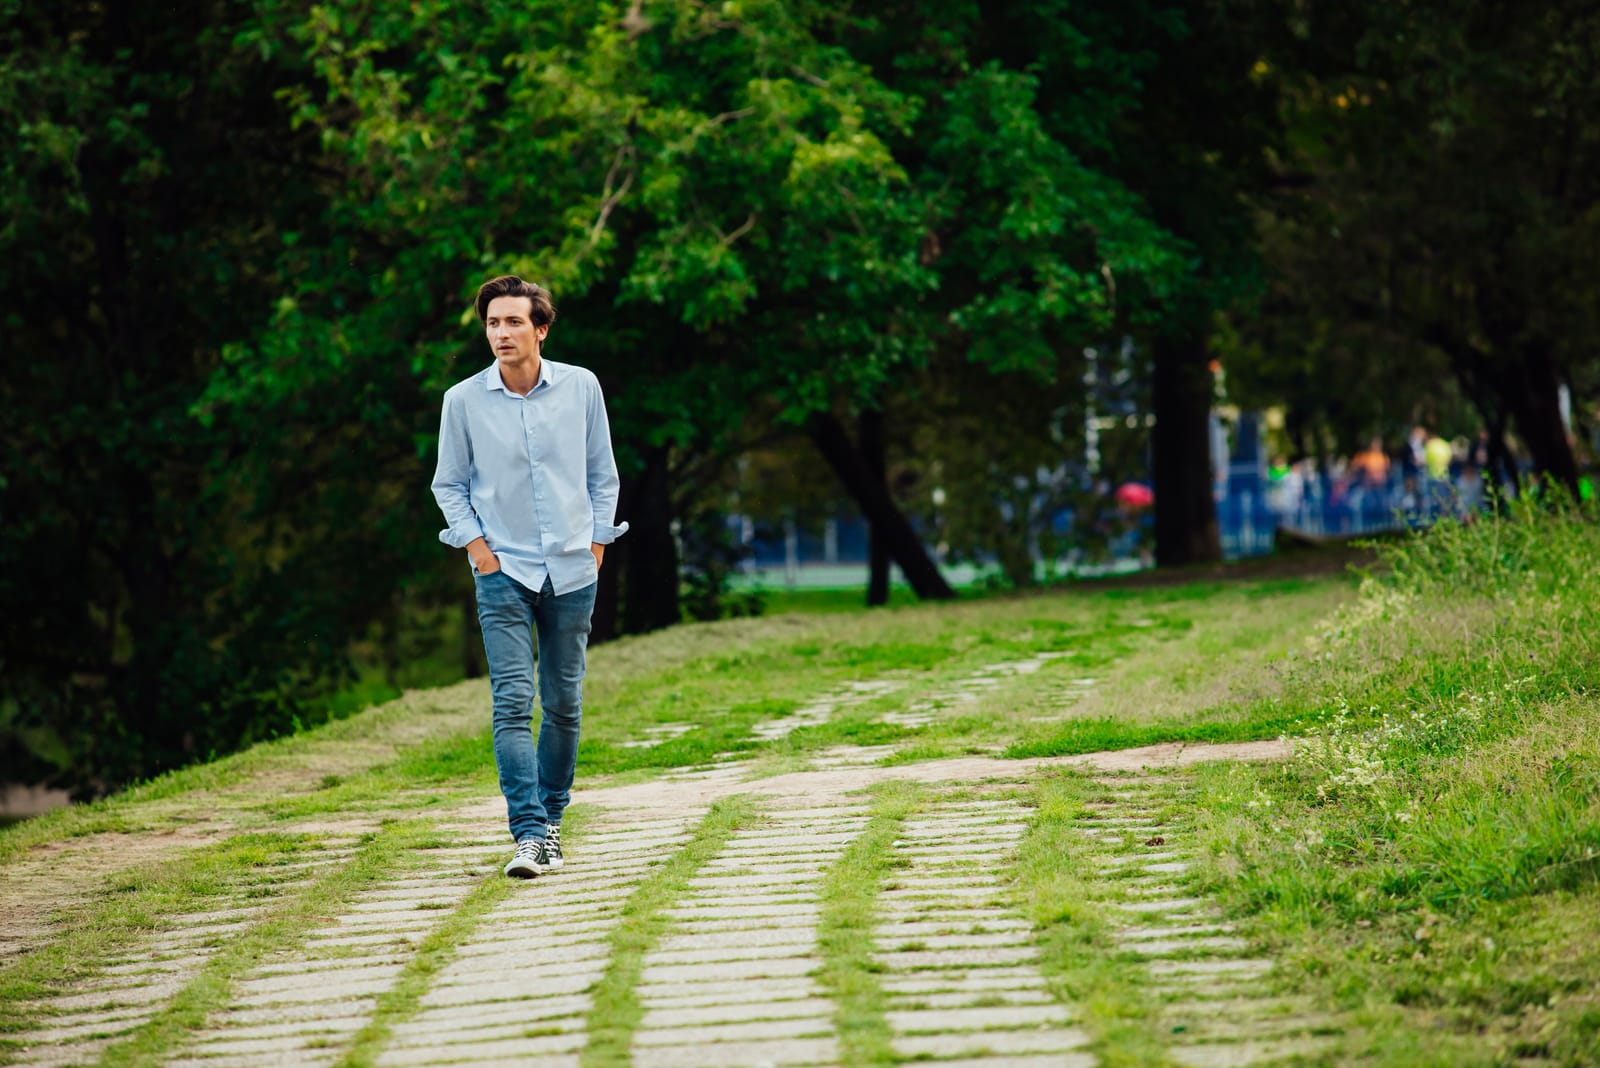 a man in a blue shirt walks through the park